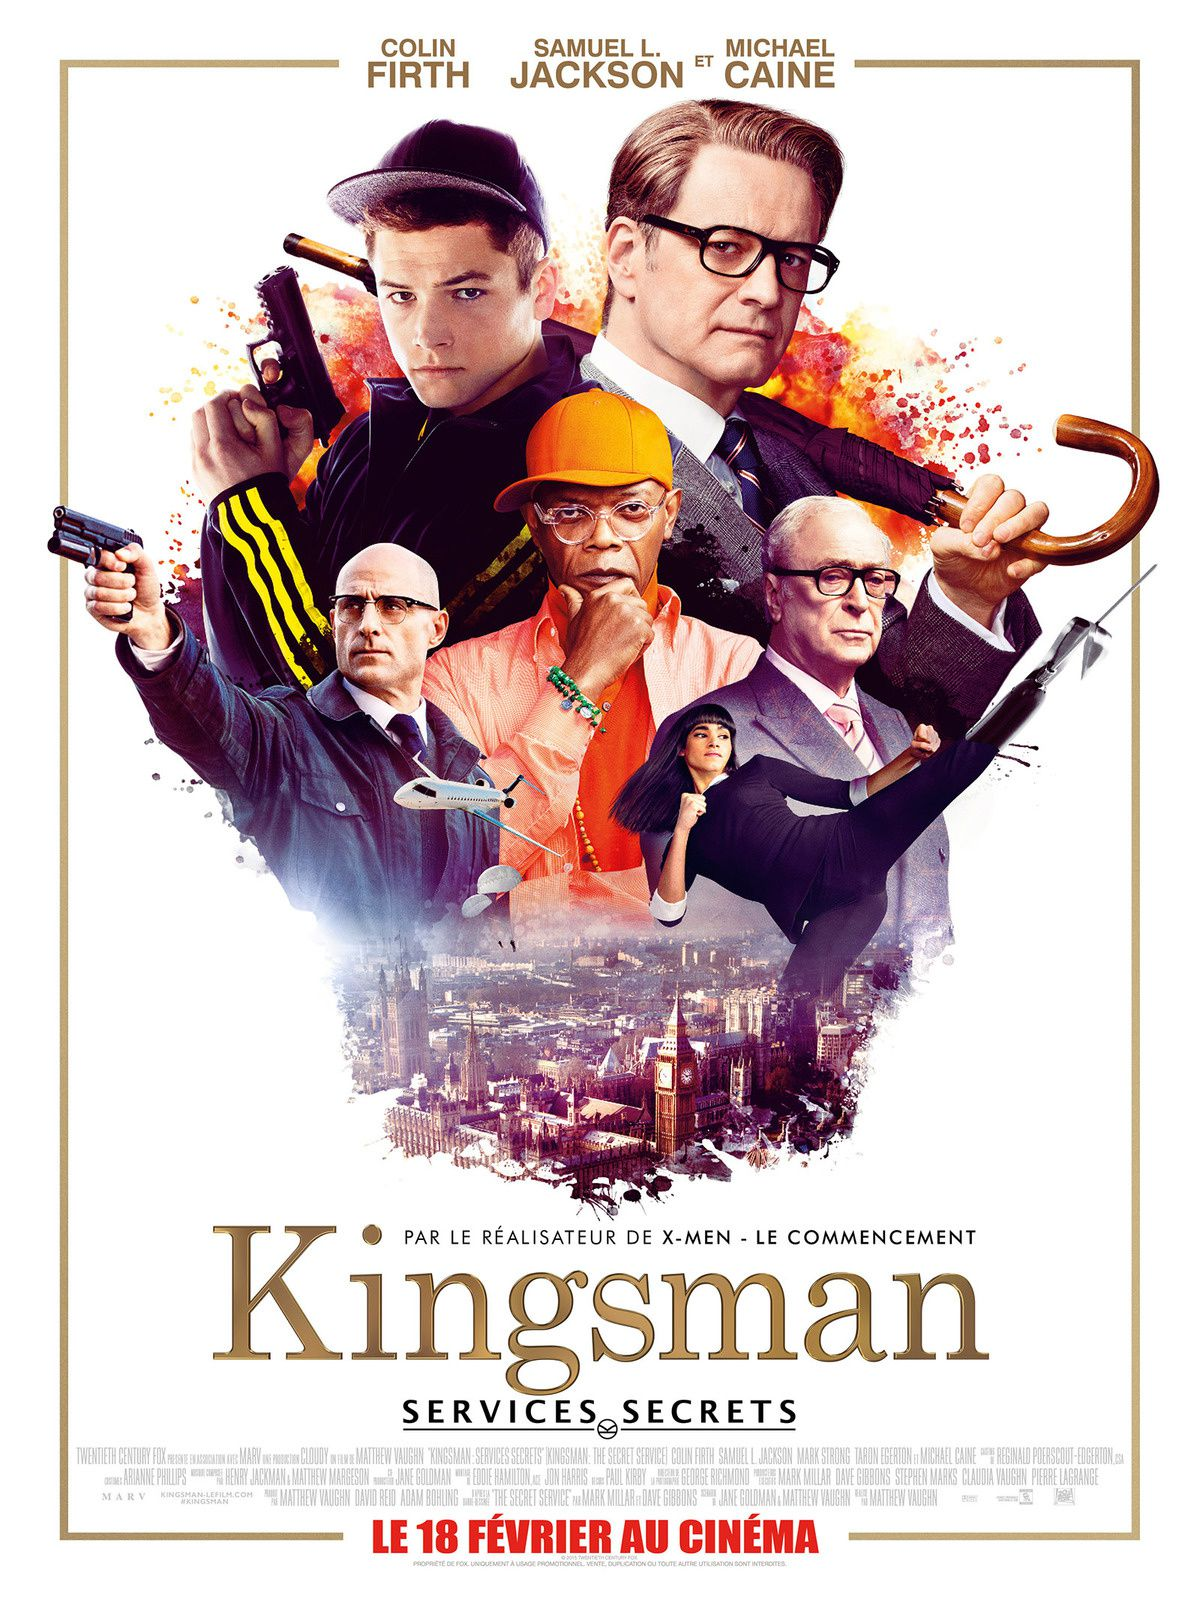 KINGSMAN de MATTHEW VAUGHN